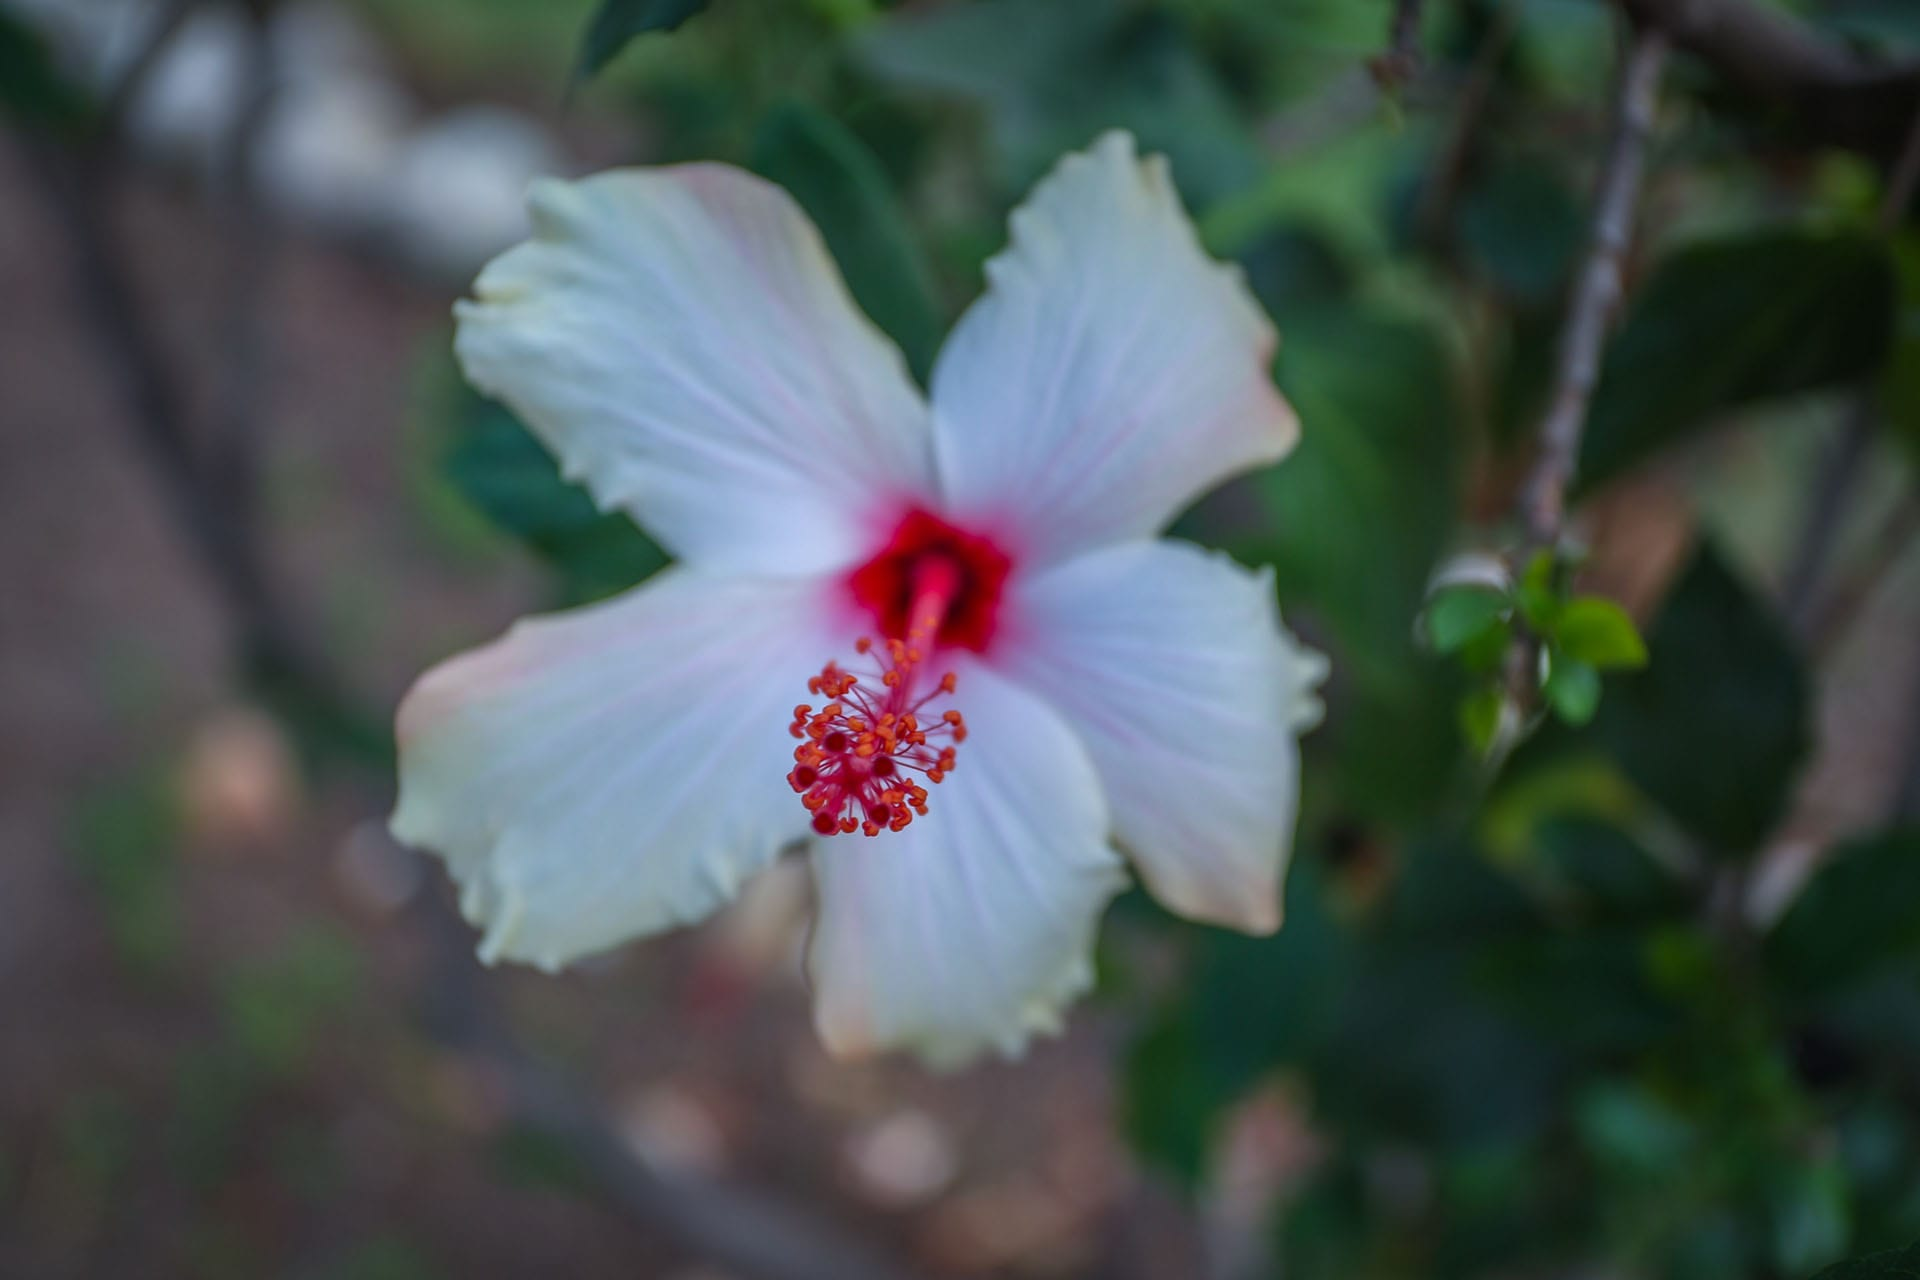 Close-up of a white and red flower